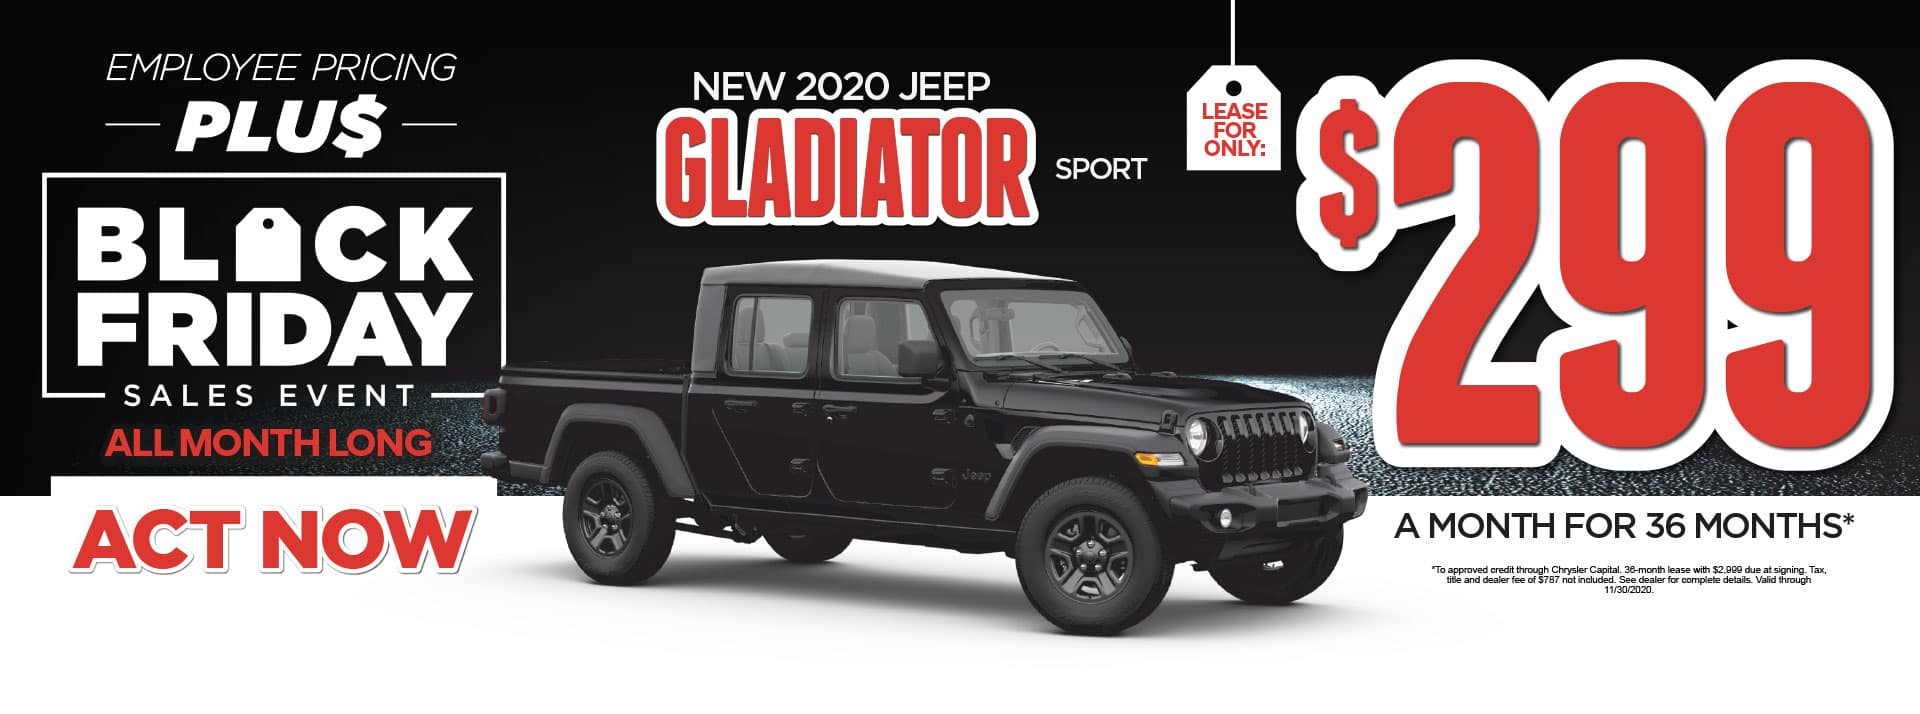 New 2020 Jeep Gladiator Sport lease for only $299/Mo* Act Now